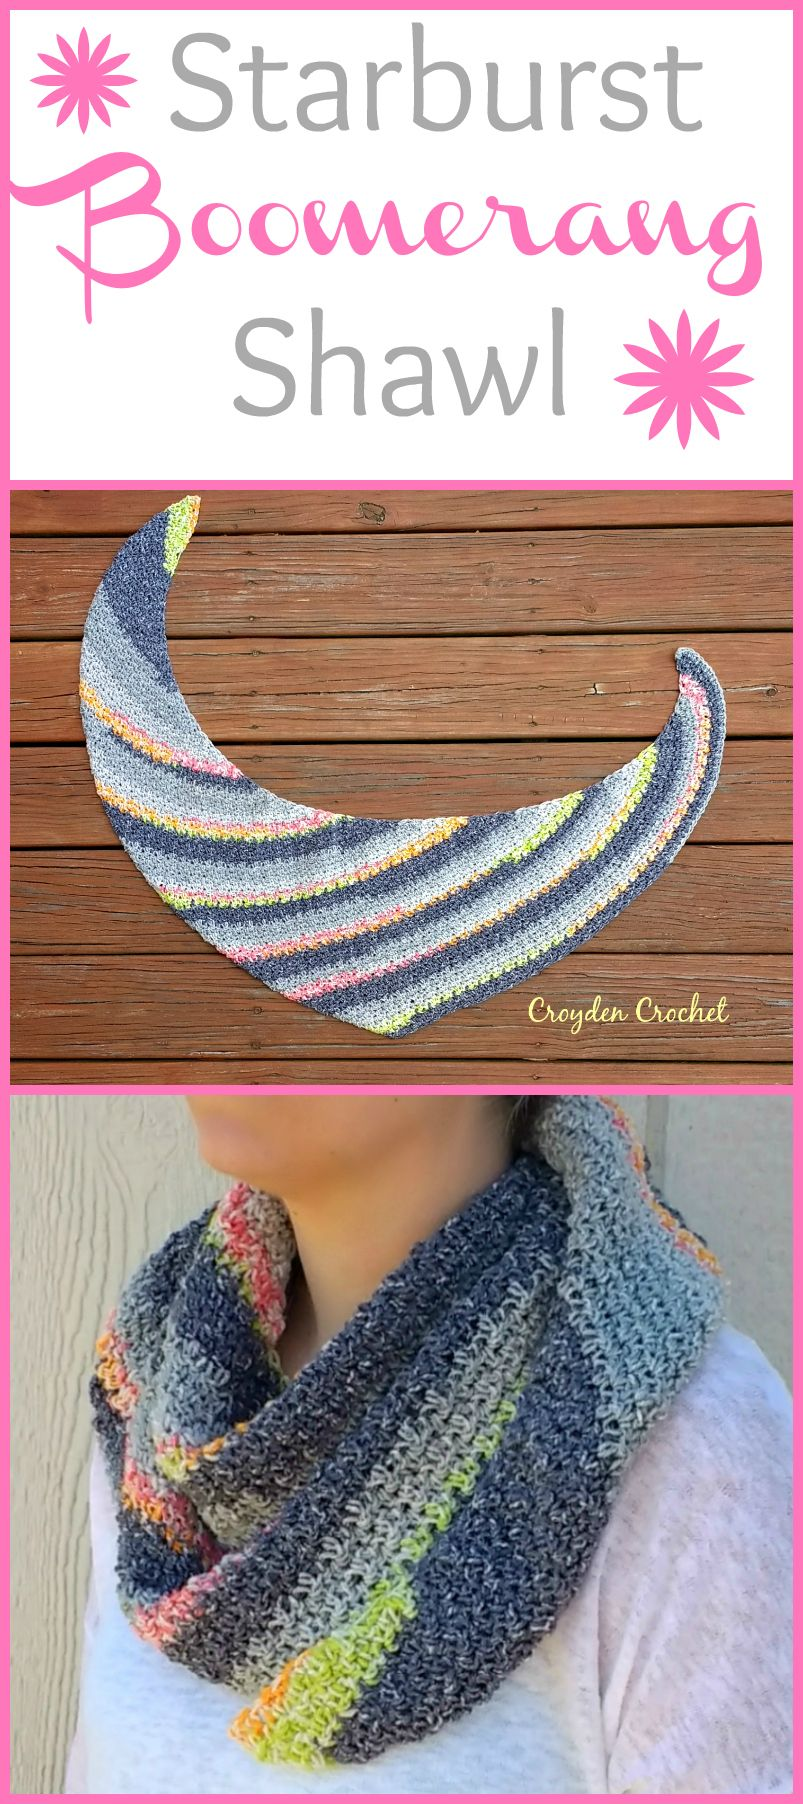 Crochet starburst boomerang shawl free crochet shawl patterns crochet starburst boomerang shawl free crochet shawl patternscrochet bankloansurffo Image collections